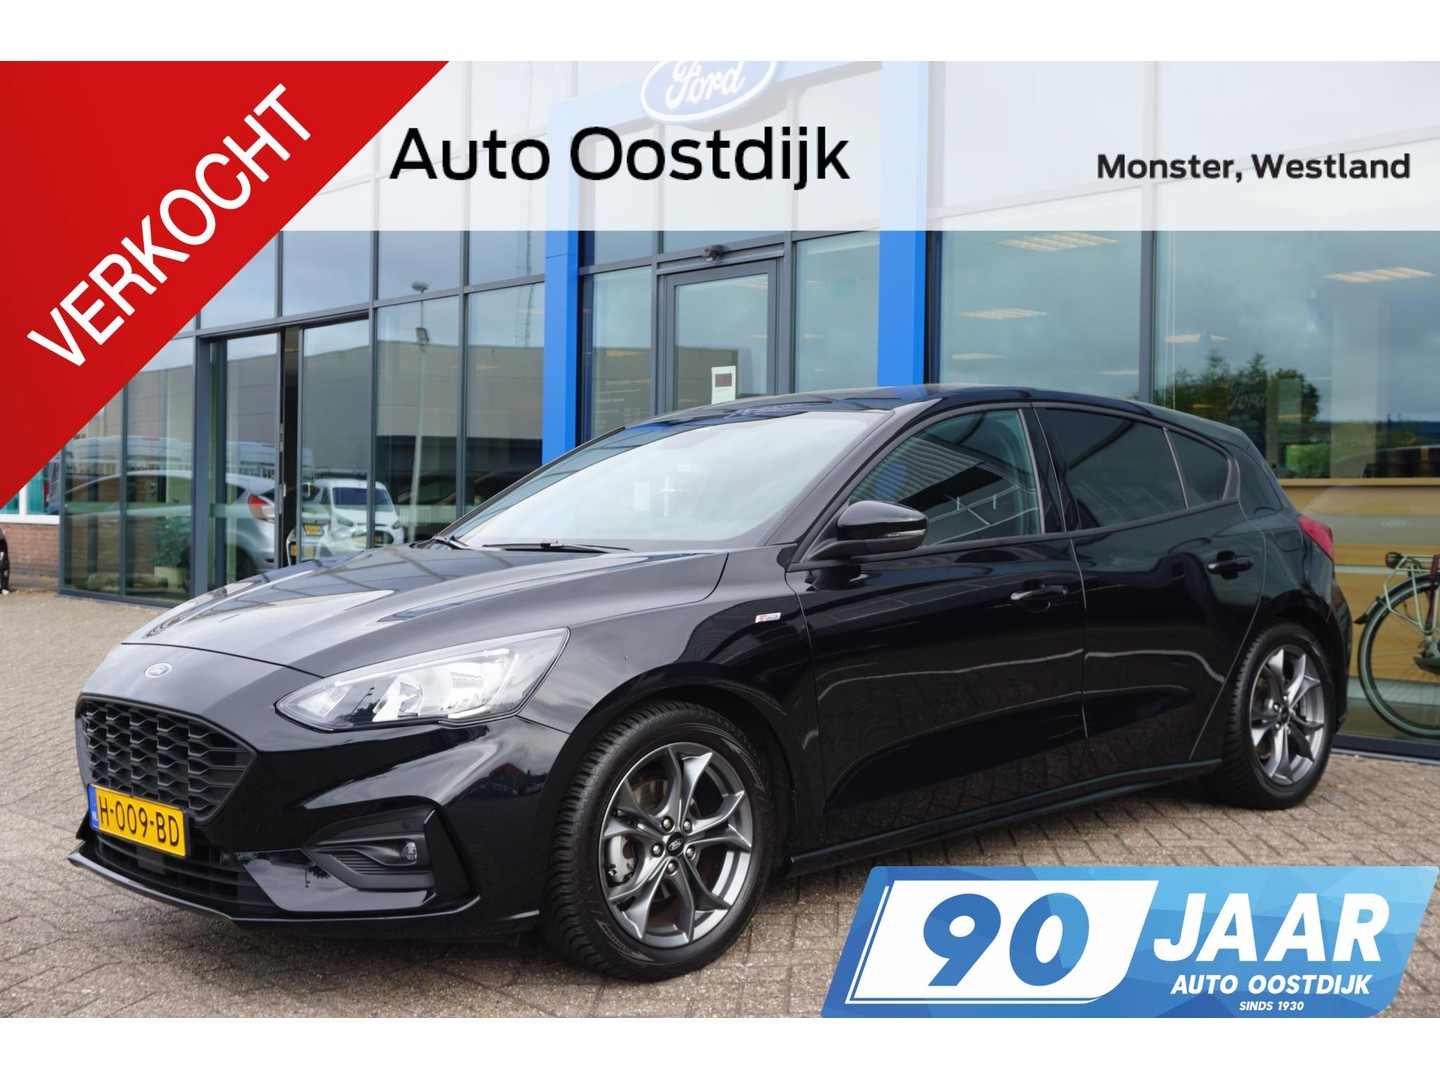 Ford Focus 1.0 ecoboost st line business 125pk navi winterpack cruise control privacy glass parkeersensoren *actie prijs*